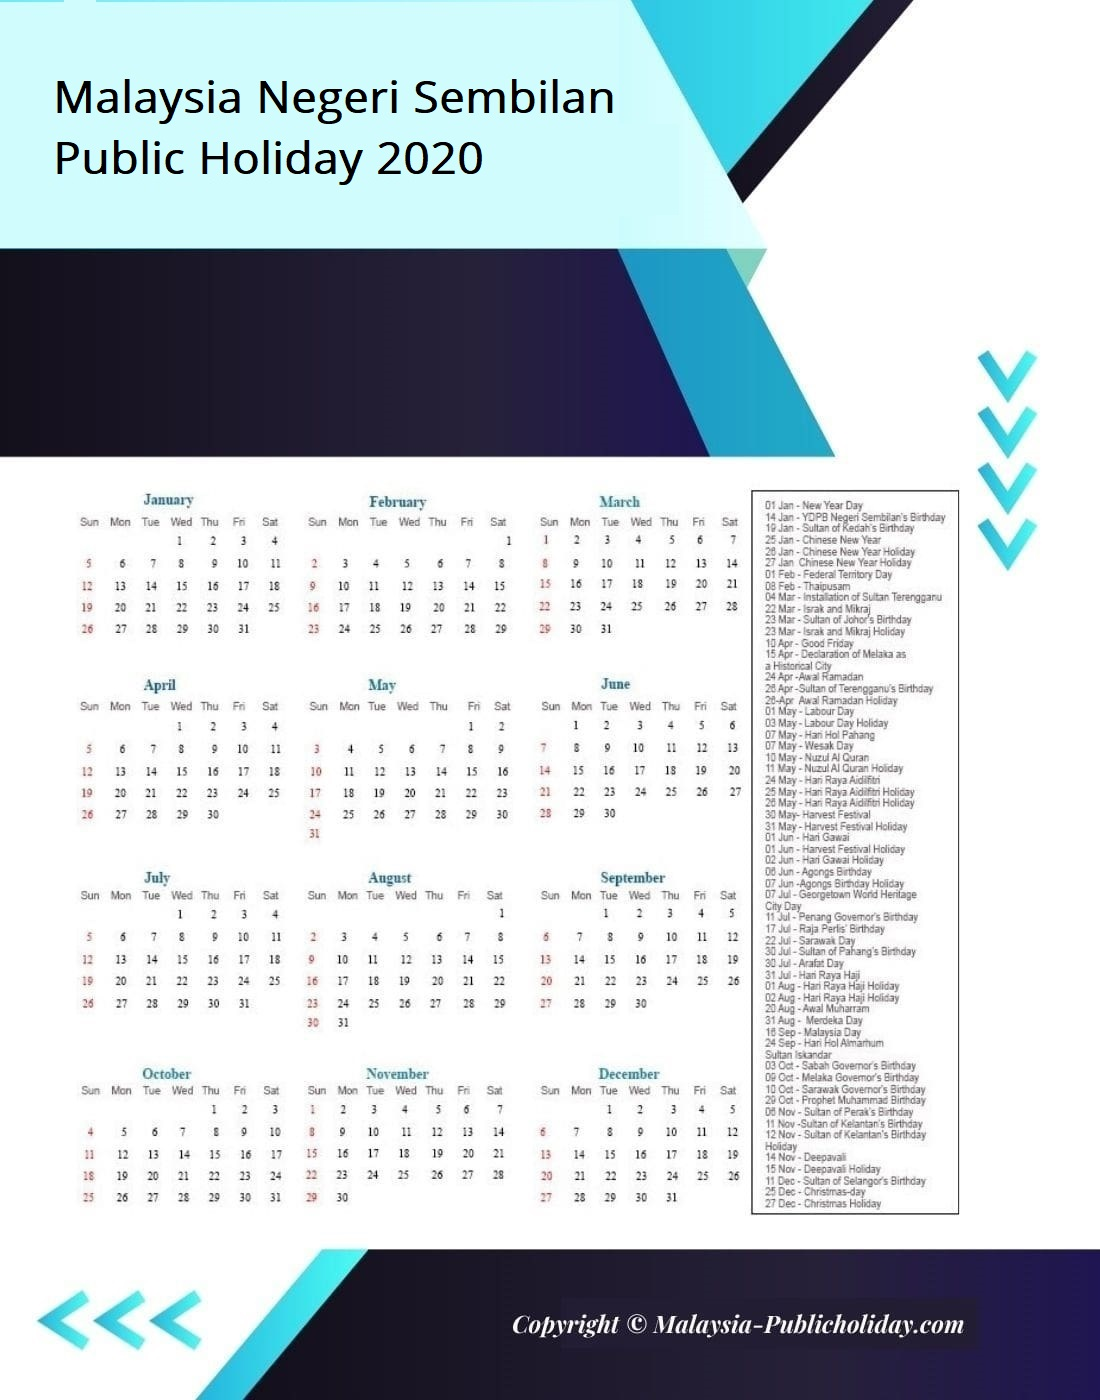 Negeri Sembilan Calendars with Holidays 2020